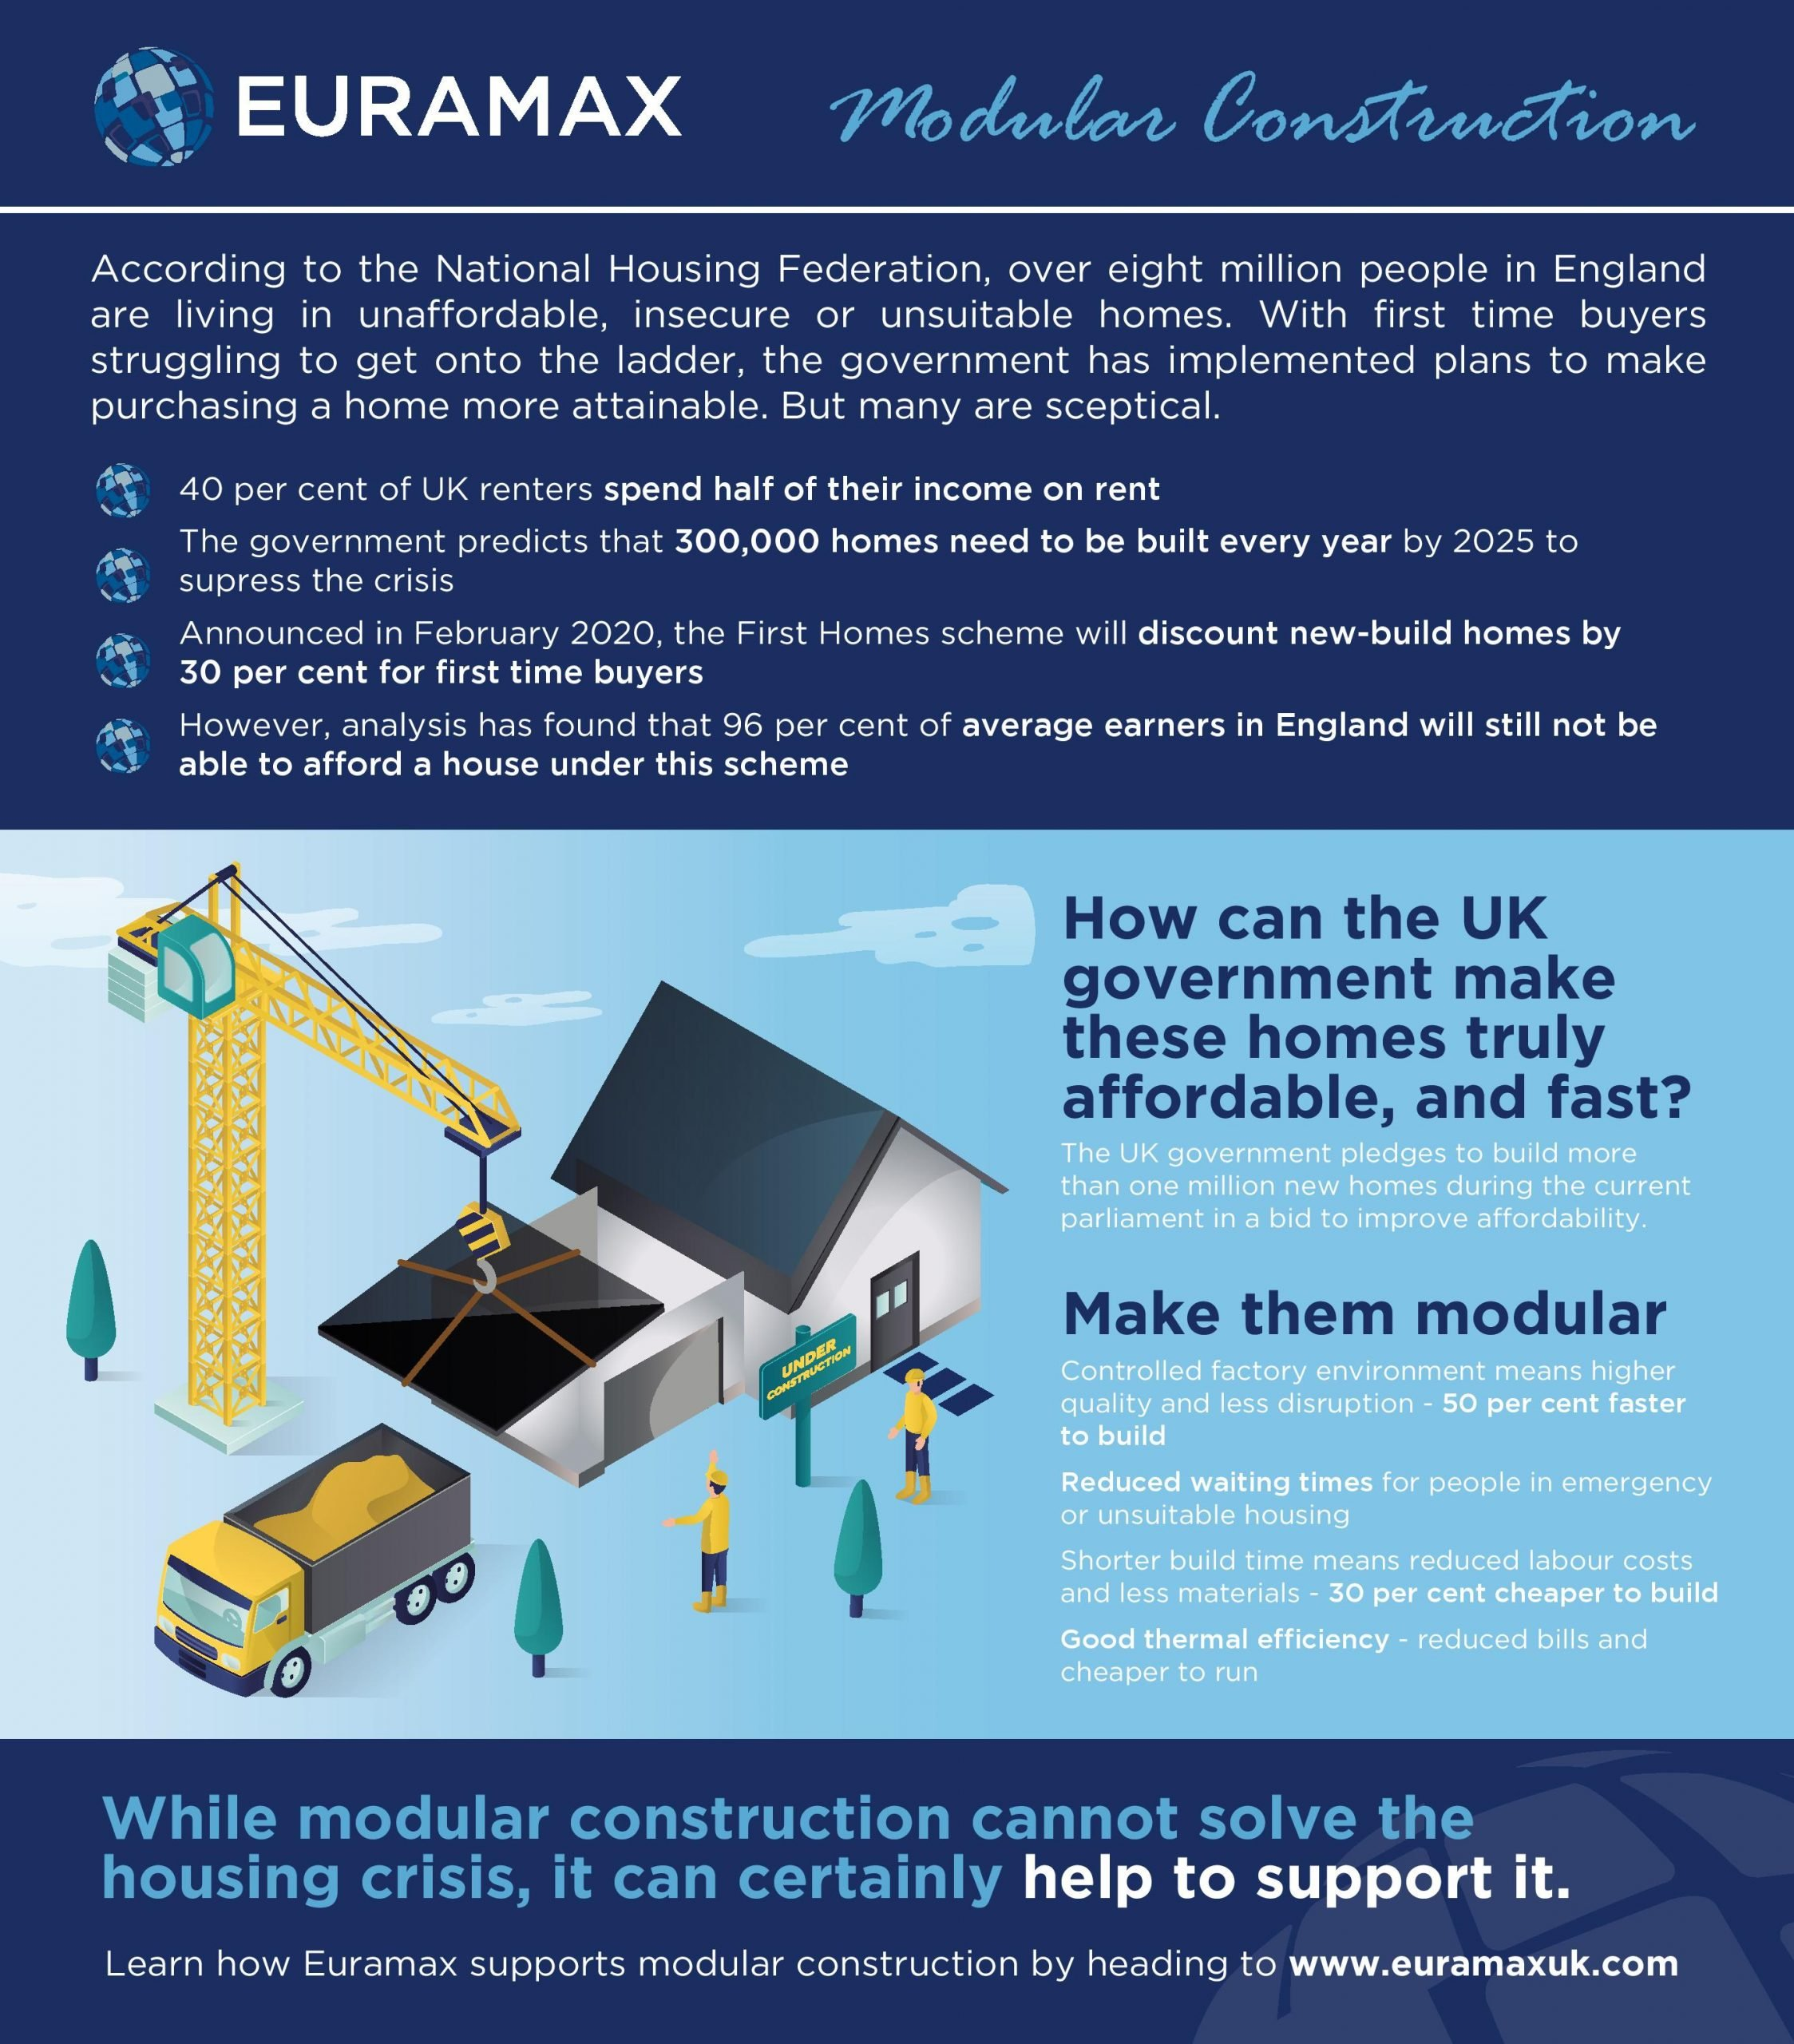 Euramax releases infographic on benefits modular construction brings to housing market